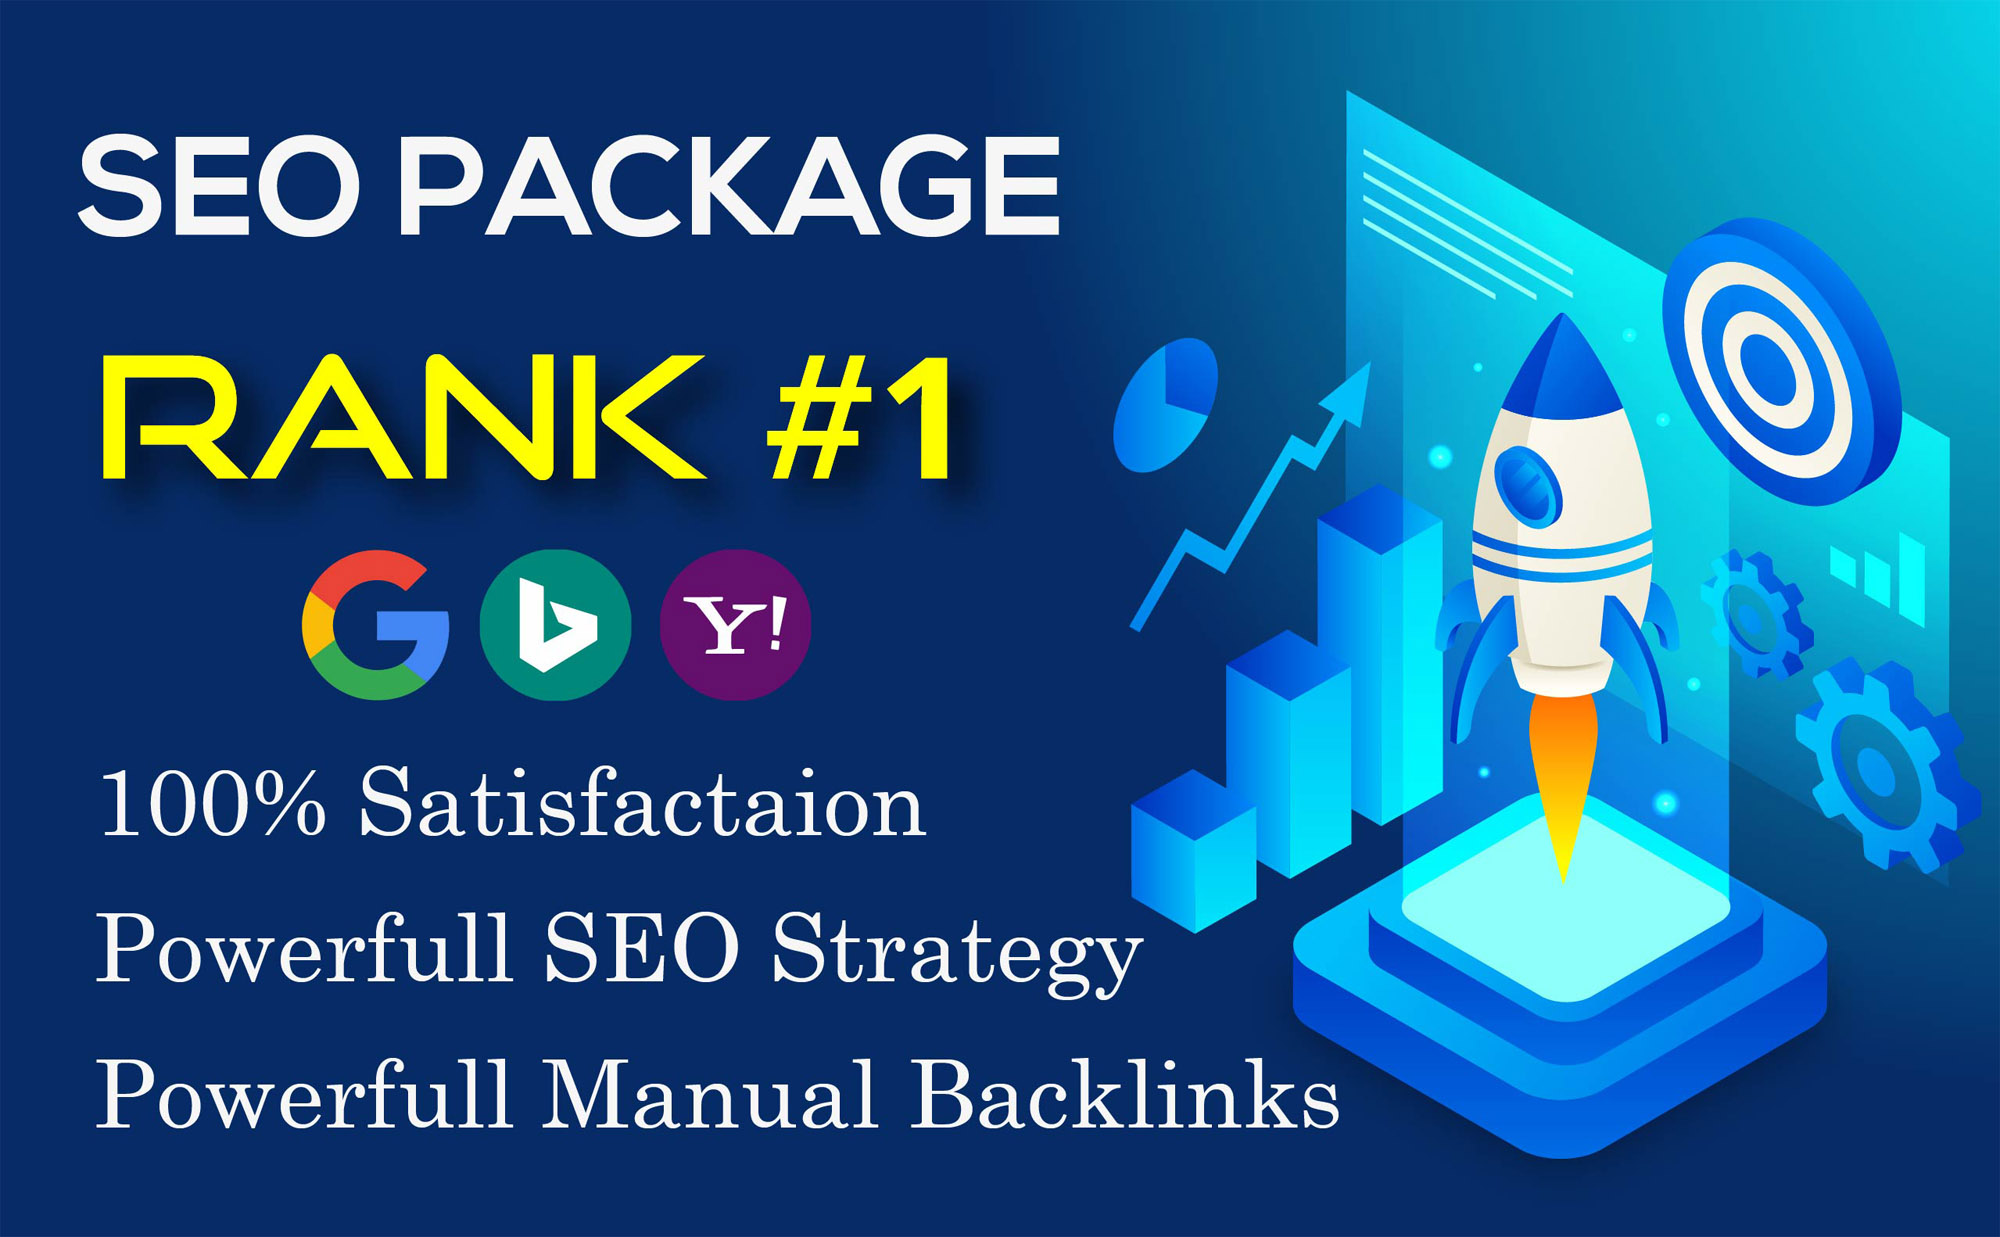 Make Powerfull Complete Seo Package With Quality And Permanent Backlinks